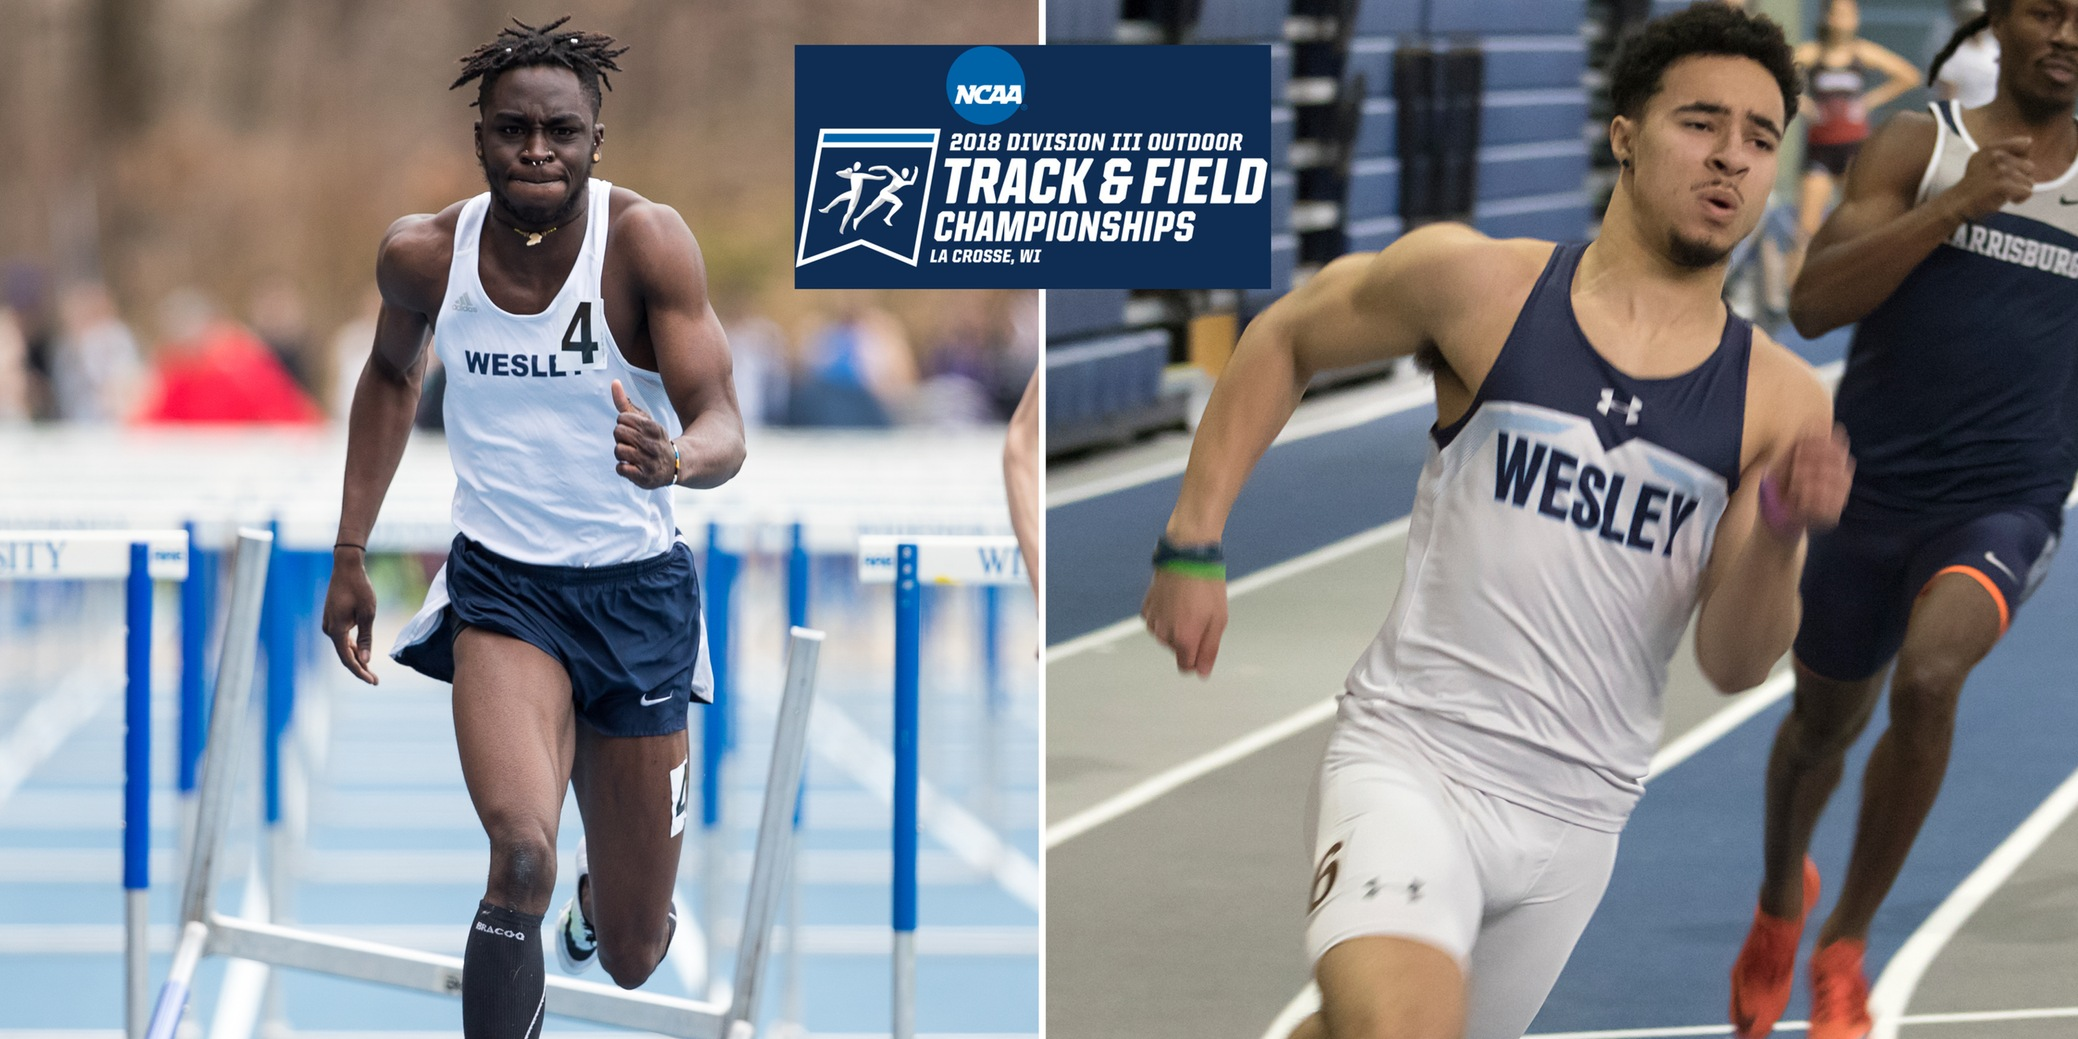 Attoh-Okine, Kalieta advance to finals in second day of NCAA Championships